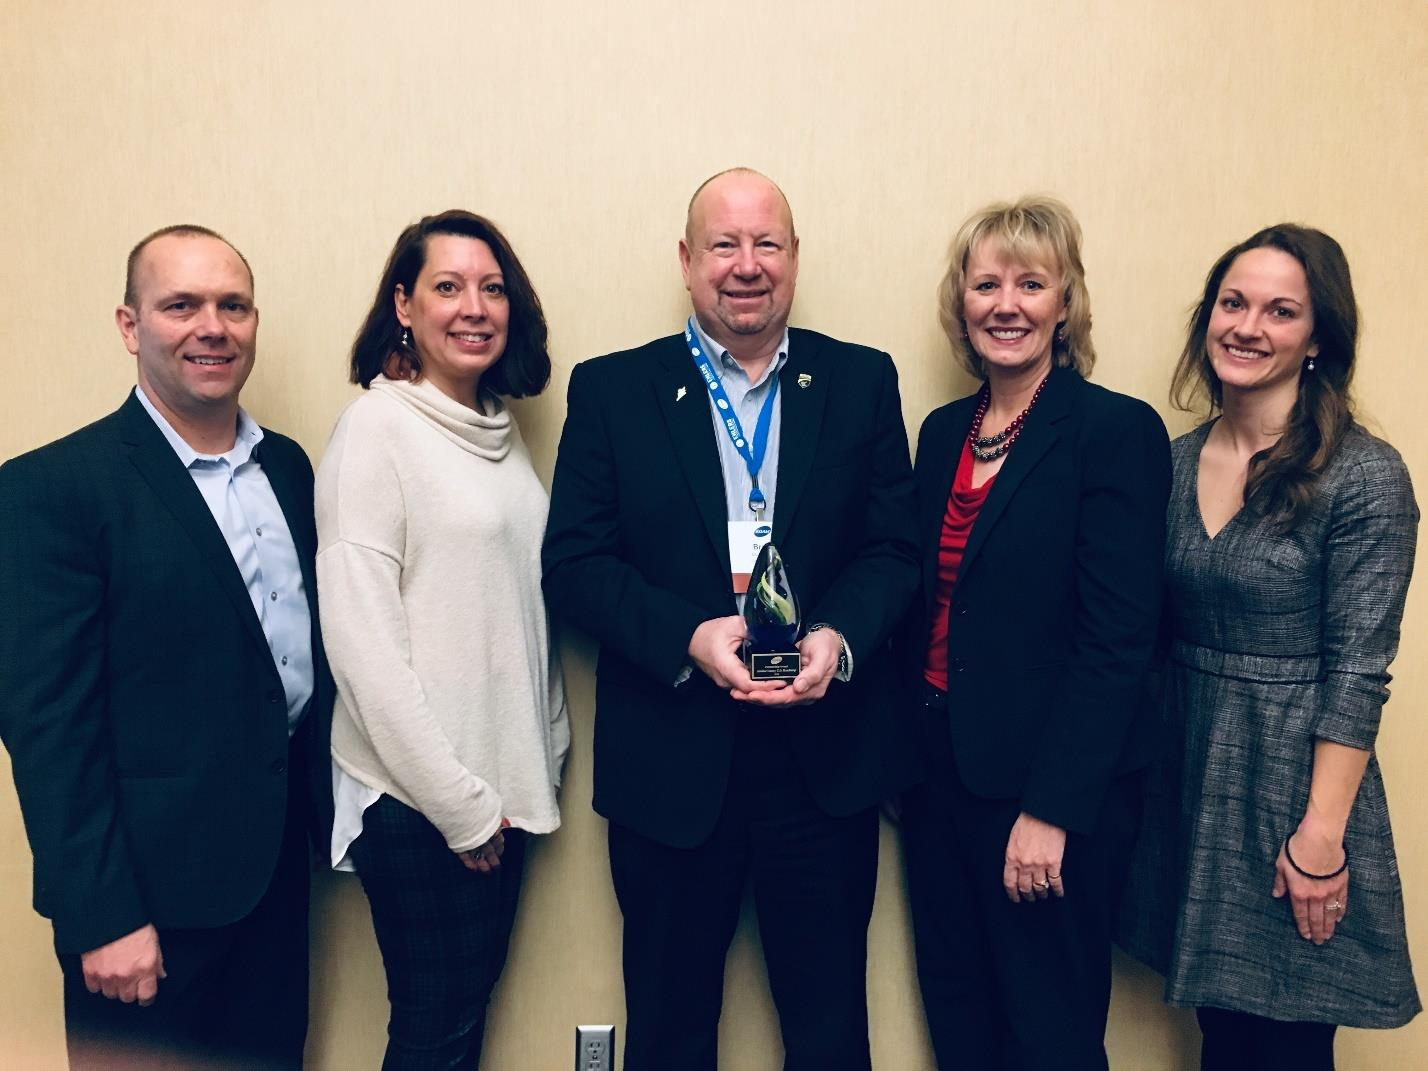 Anoka County Recognized for Economic Partnership